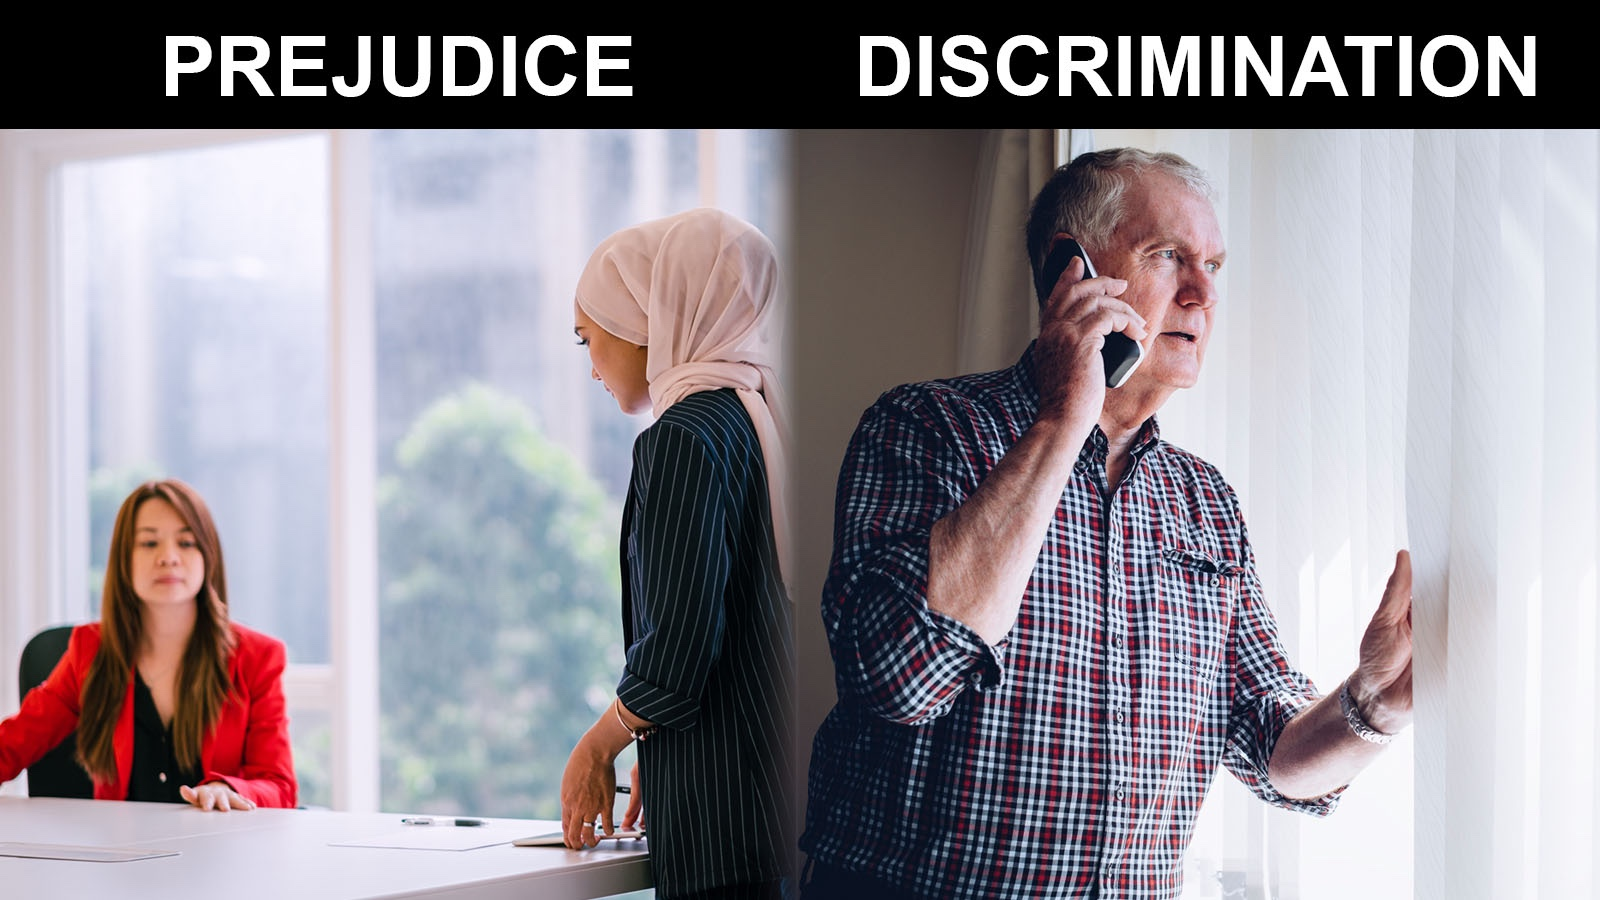 difference between prejudice and discrimination